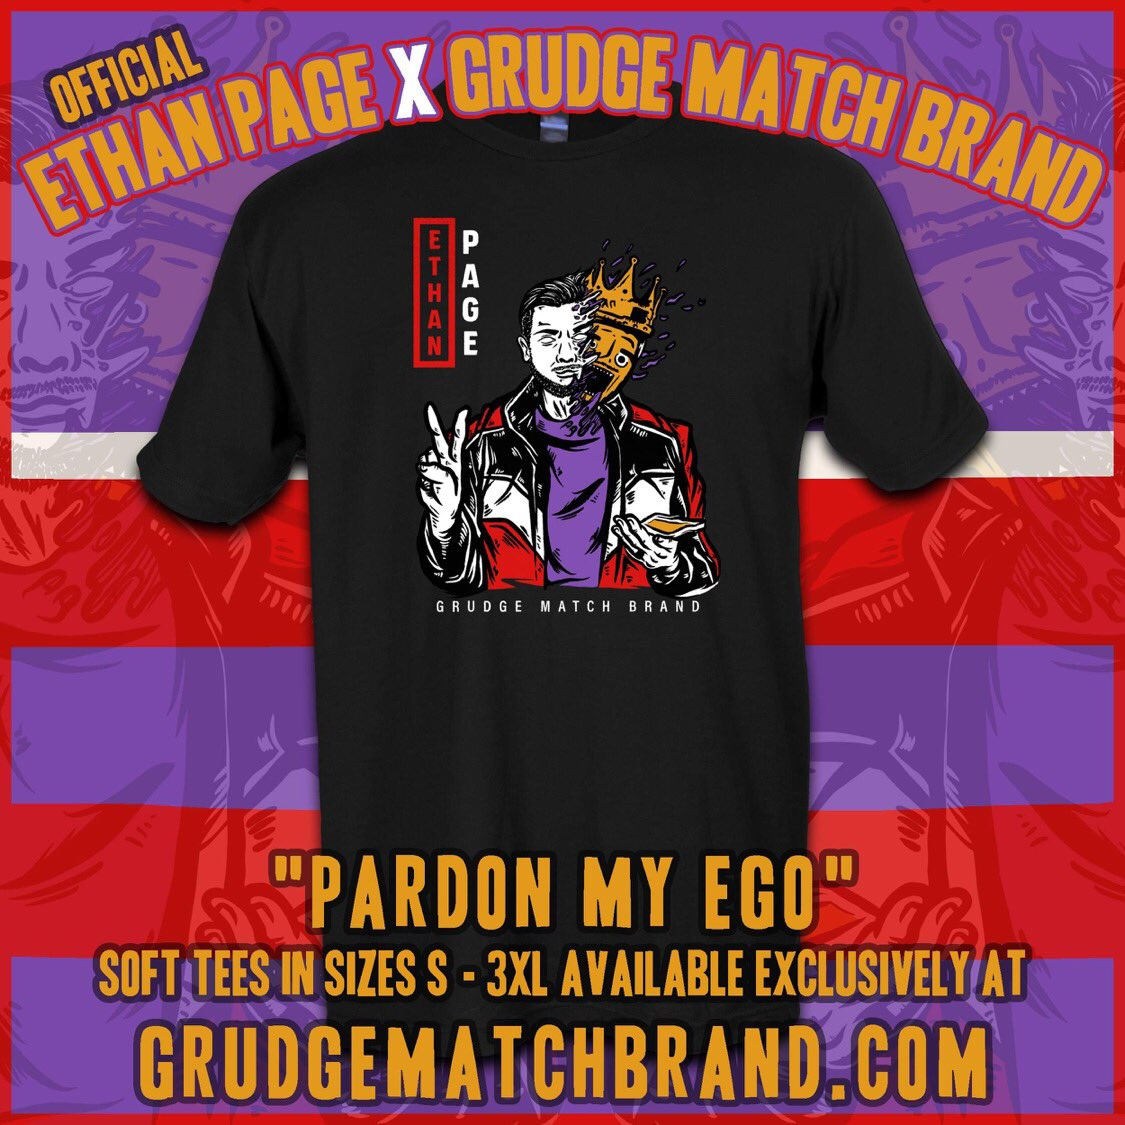 🚨ON SALE & READY TO SHIP!!🚨 Ethan Page tees NOW AVAILABLE at ! Our official collaboration w/ Impact Wrestling Star, Karate Man, snack daddy, & vlogger  @OfficialEGO. Art by @ofthedead209 #grudgematchbrand #ethanpage #hardtokill